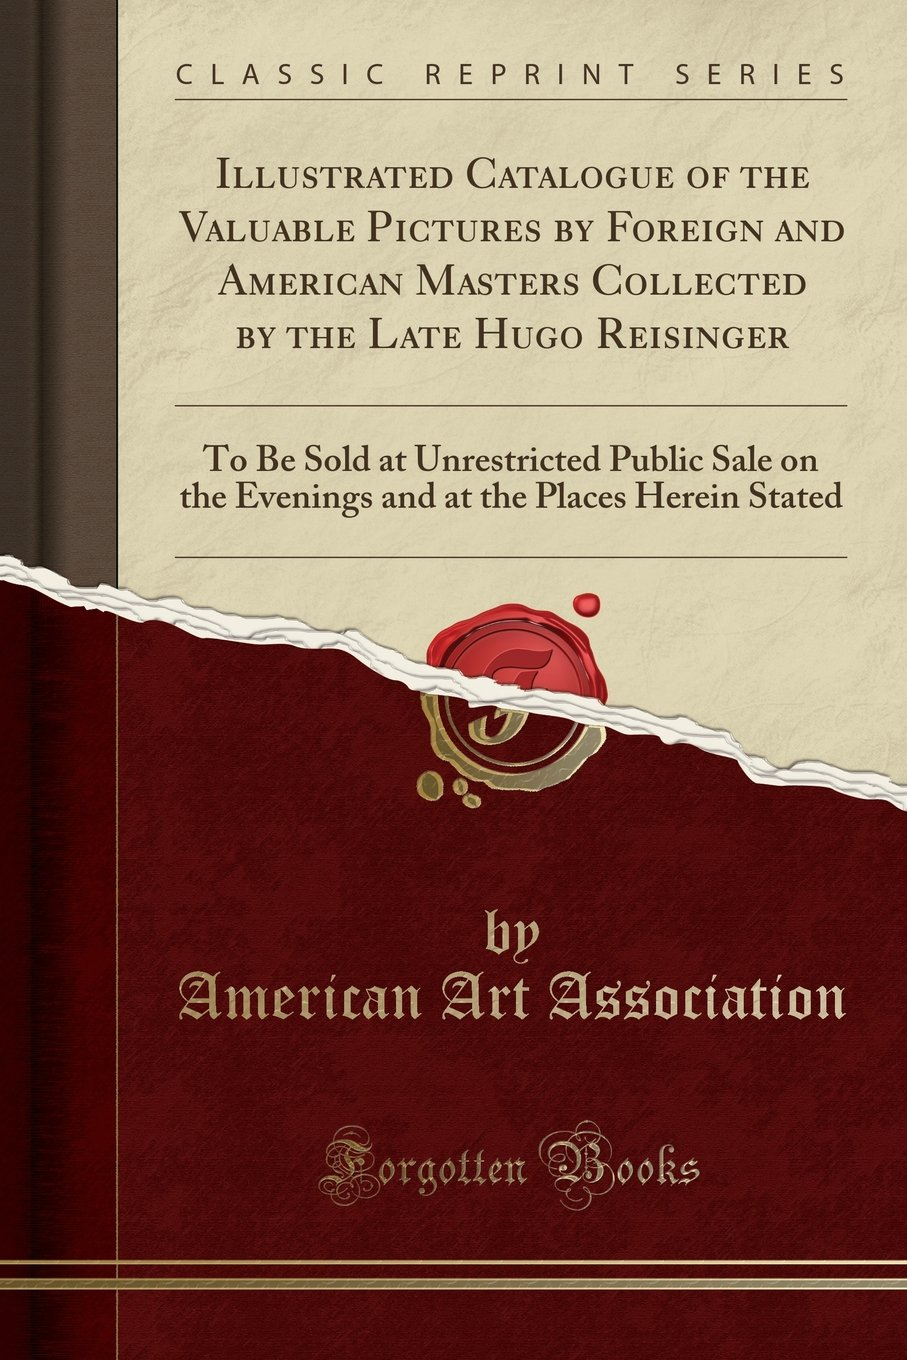 Illustrated Catalogue of the Valuable Pictures by Foreign and American Masters Collected by the Late Hugo Reisinger: To Be Sold at Unrestricted Public ... at the Places Herein Stated (Classic Reprint) pdf epub